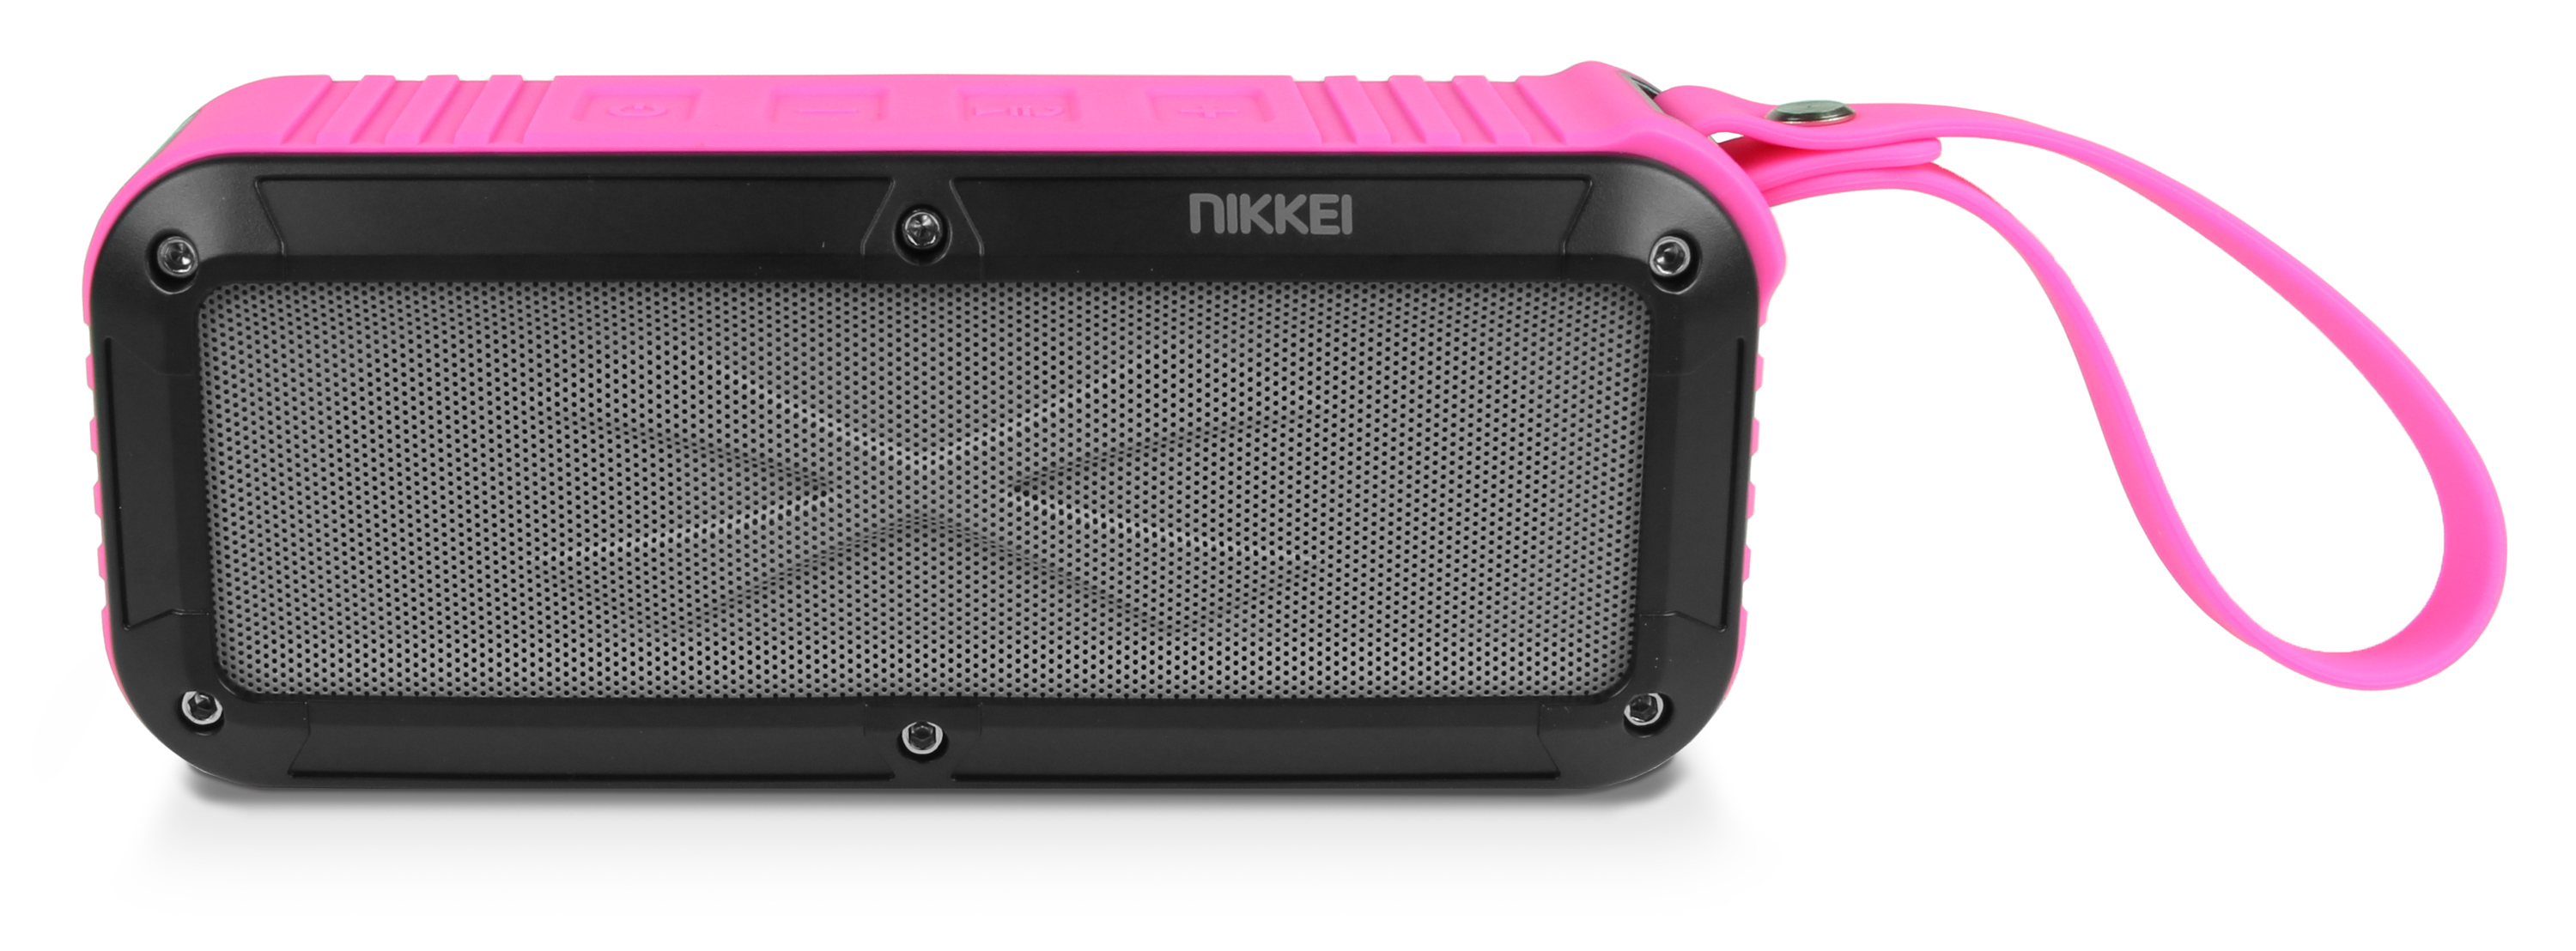 Nikkei BOXX3PK Waterproof BT Speaker 2x3W pink